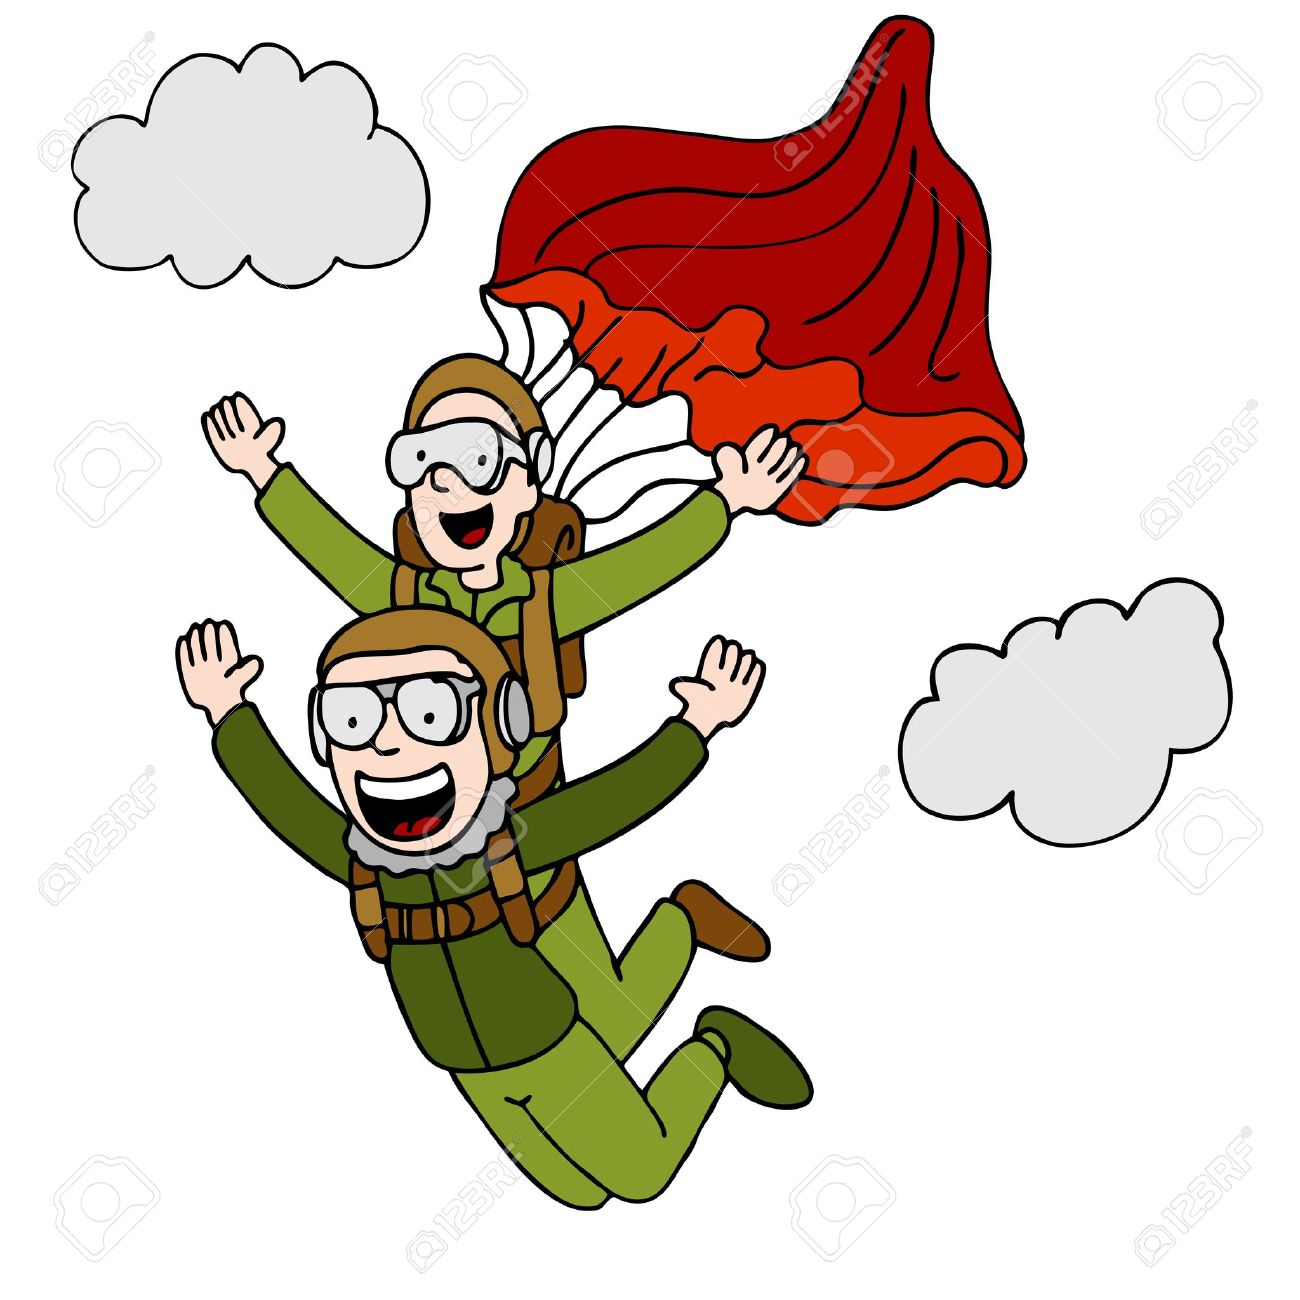 Parachute Cartoon Stock Photos Royalty Free Parachute Cartoon regarding Brilliant  free animated clipart parachute for your reference